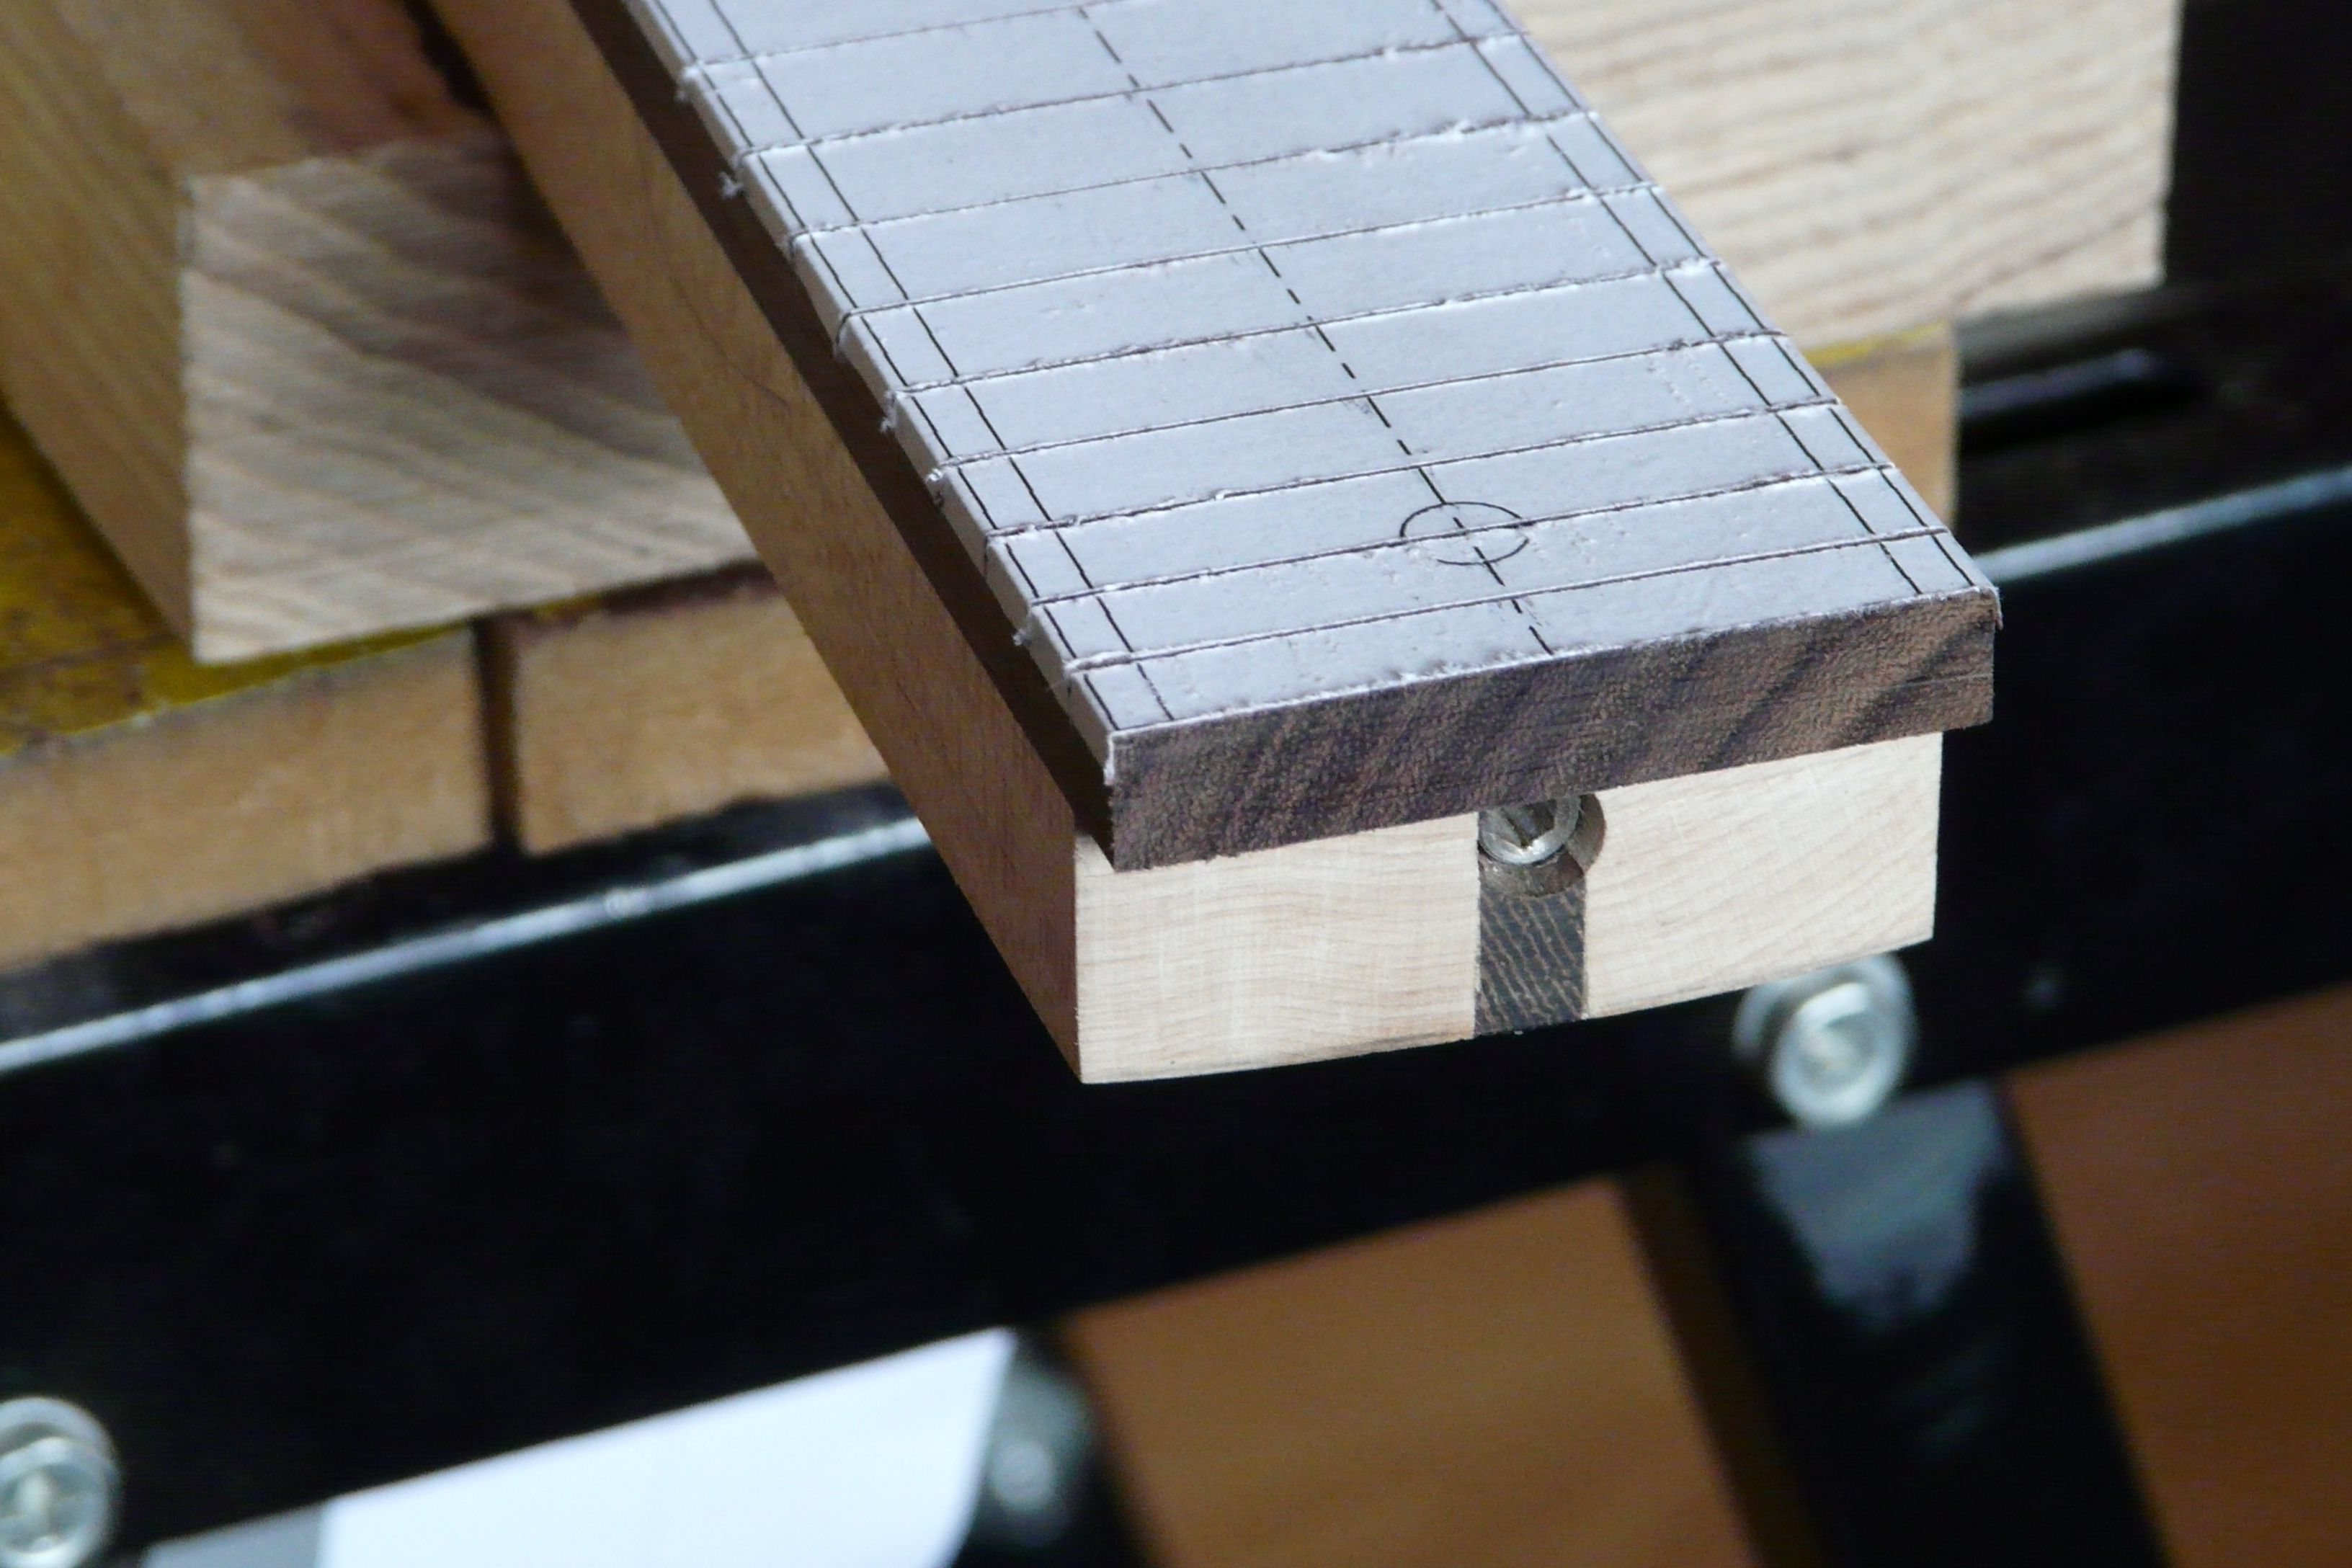 using a template to cut the frets